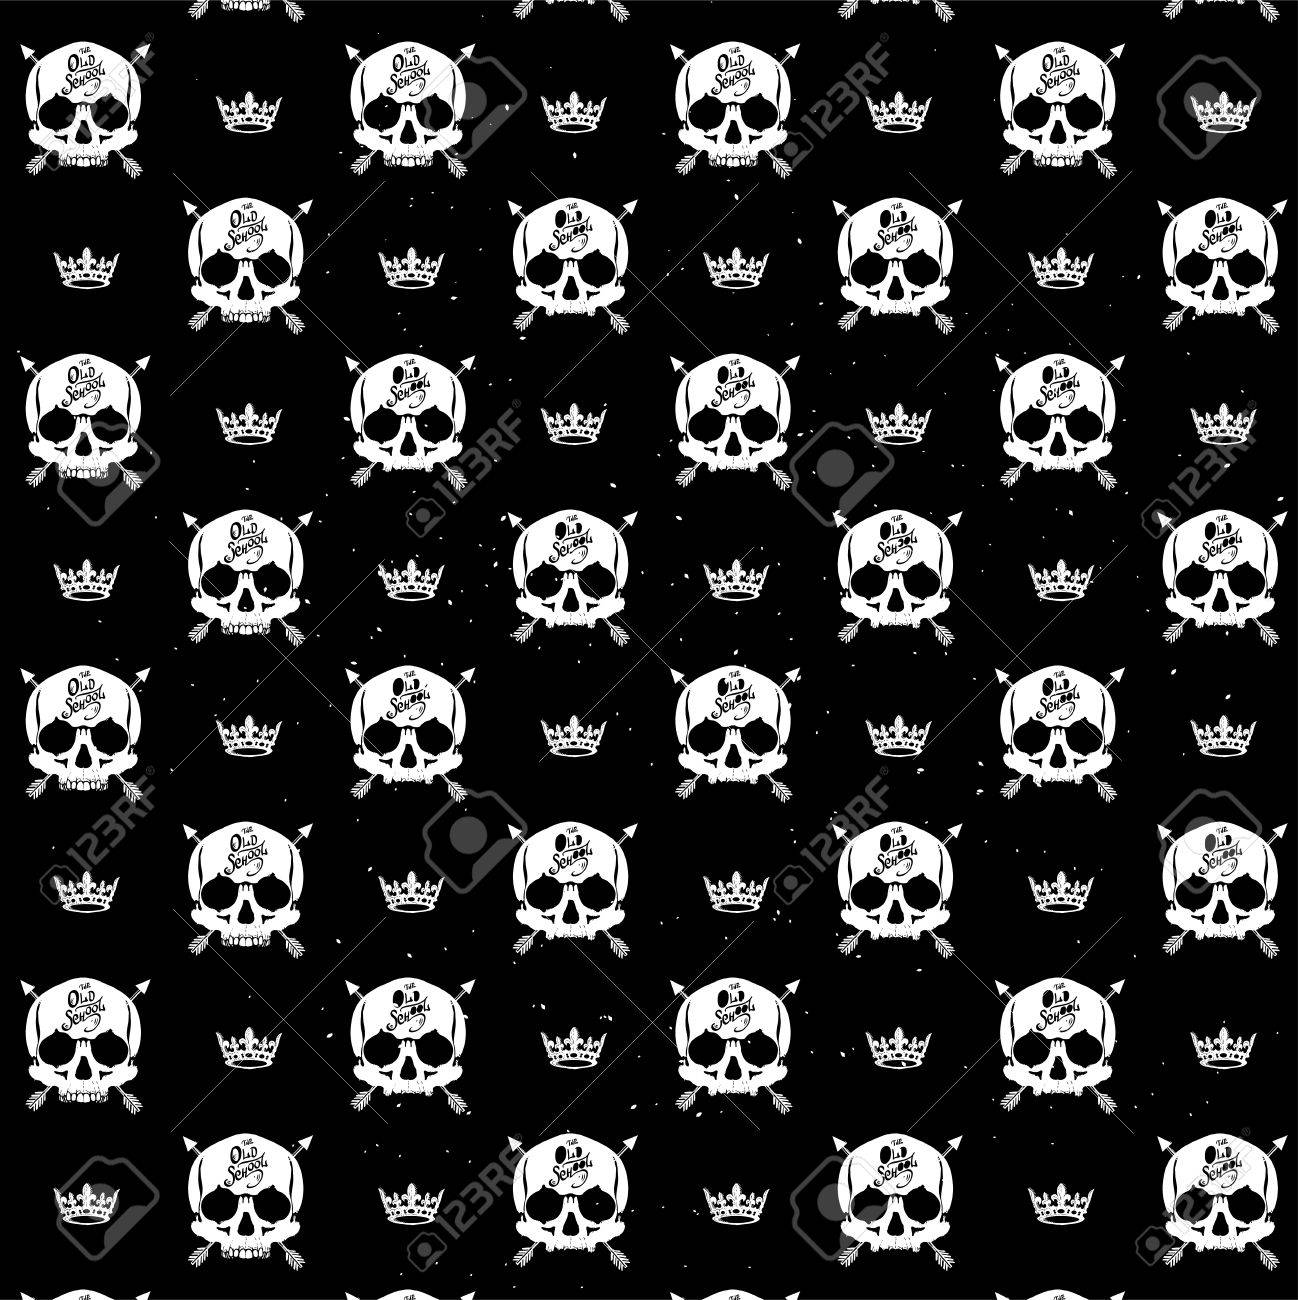 Pattern Pirate Skull Wallpaper For Tattoo Parlor Royalty Free